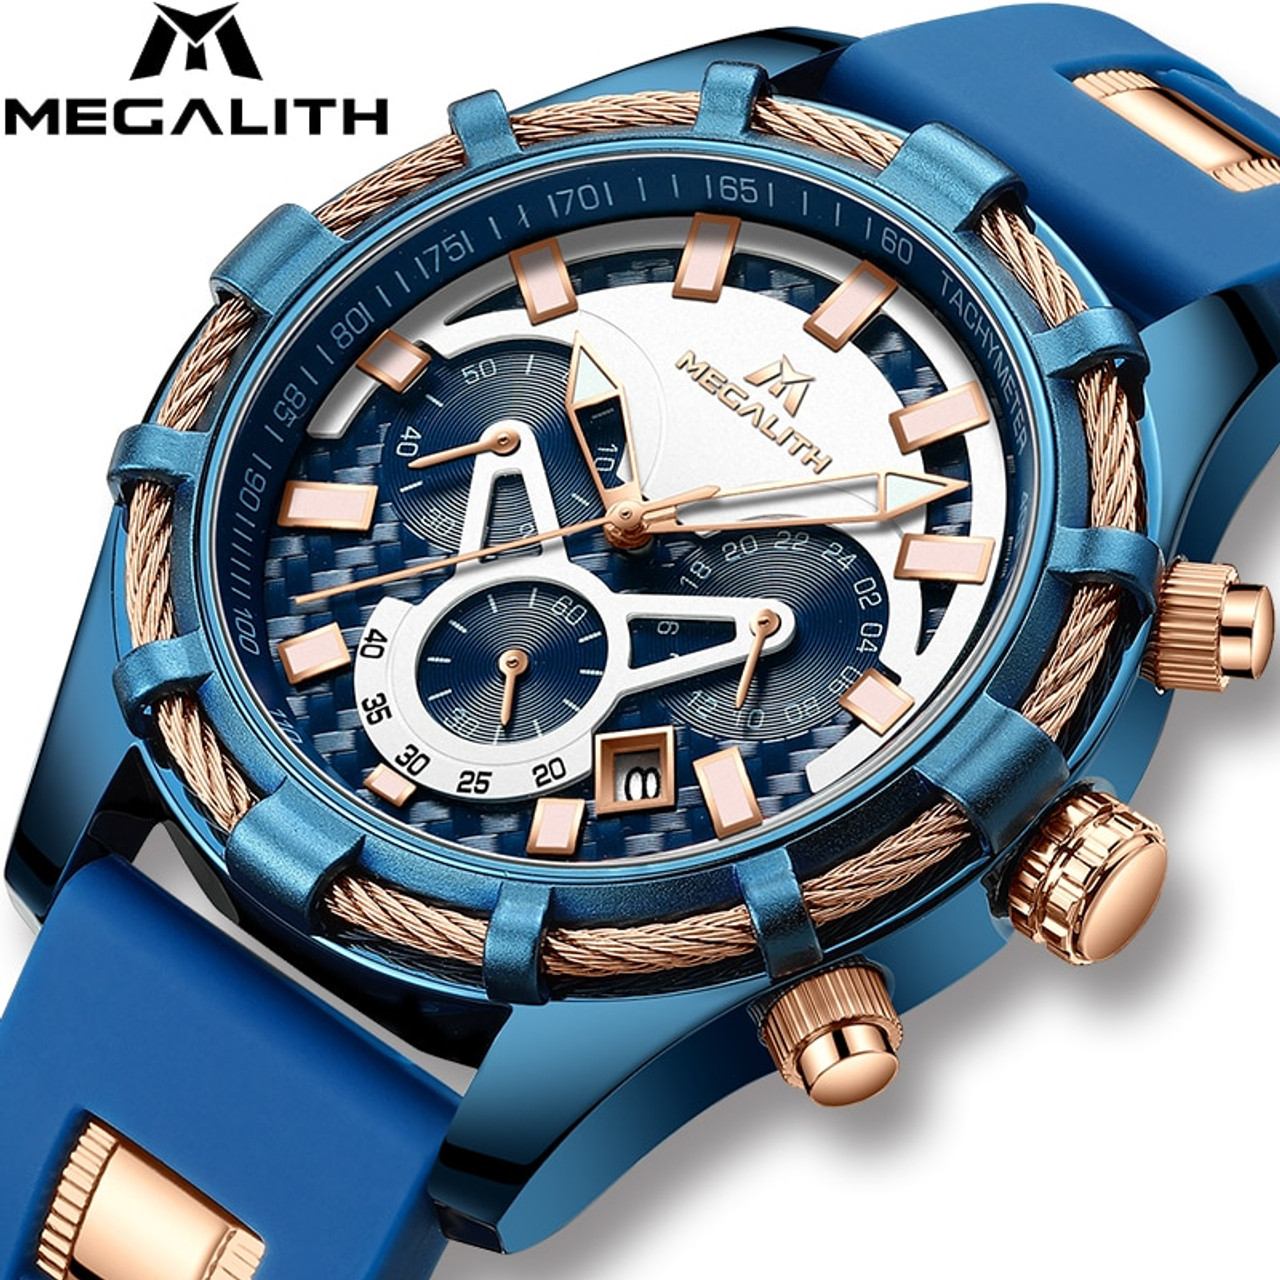 71f7eab60e2 MEGALITH Mens Watches Top Brand Luxury Waterproof Blue Silicone Strap  Sports Chronograph Quartz Wrist Watches Relogio Masculino - OnshopDeals.Com